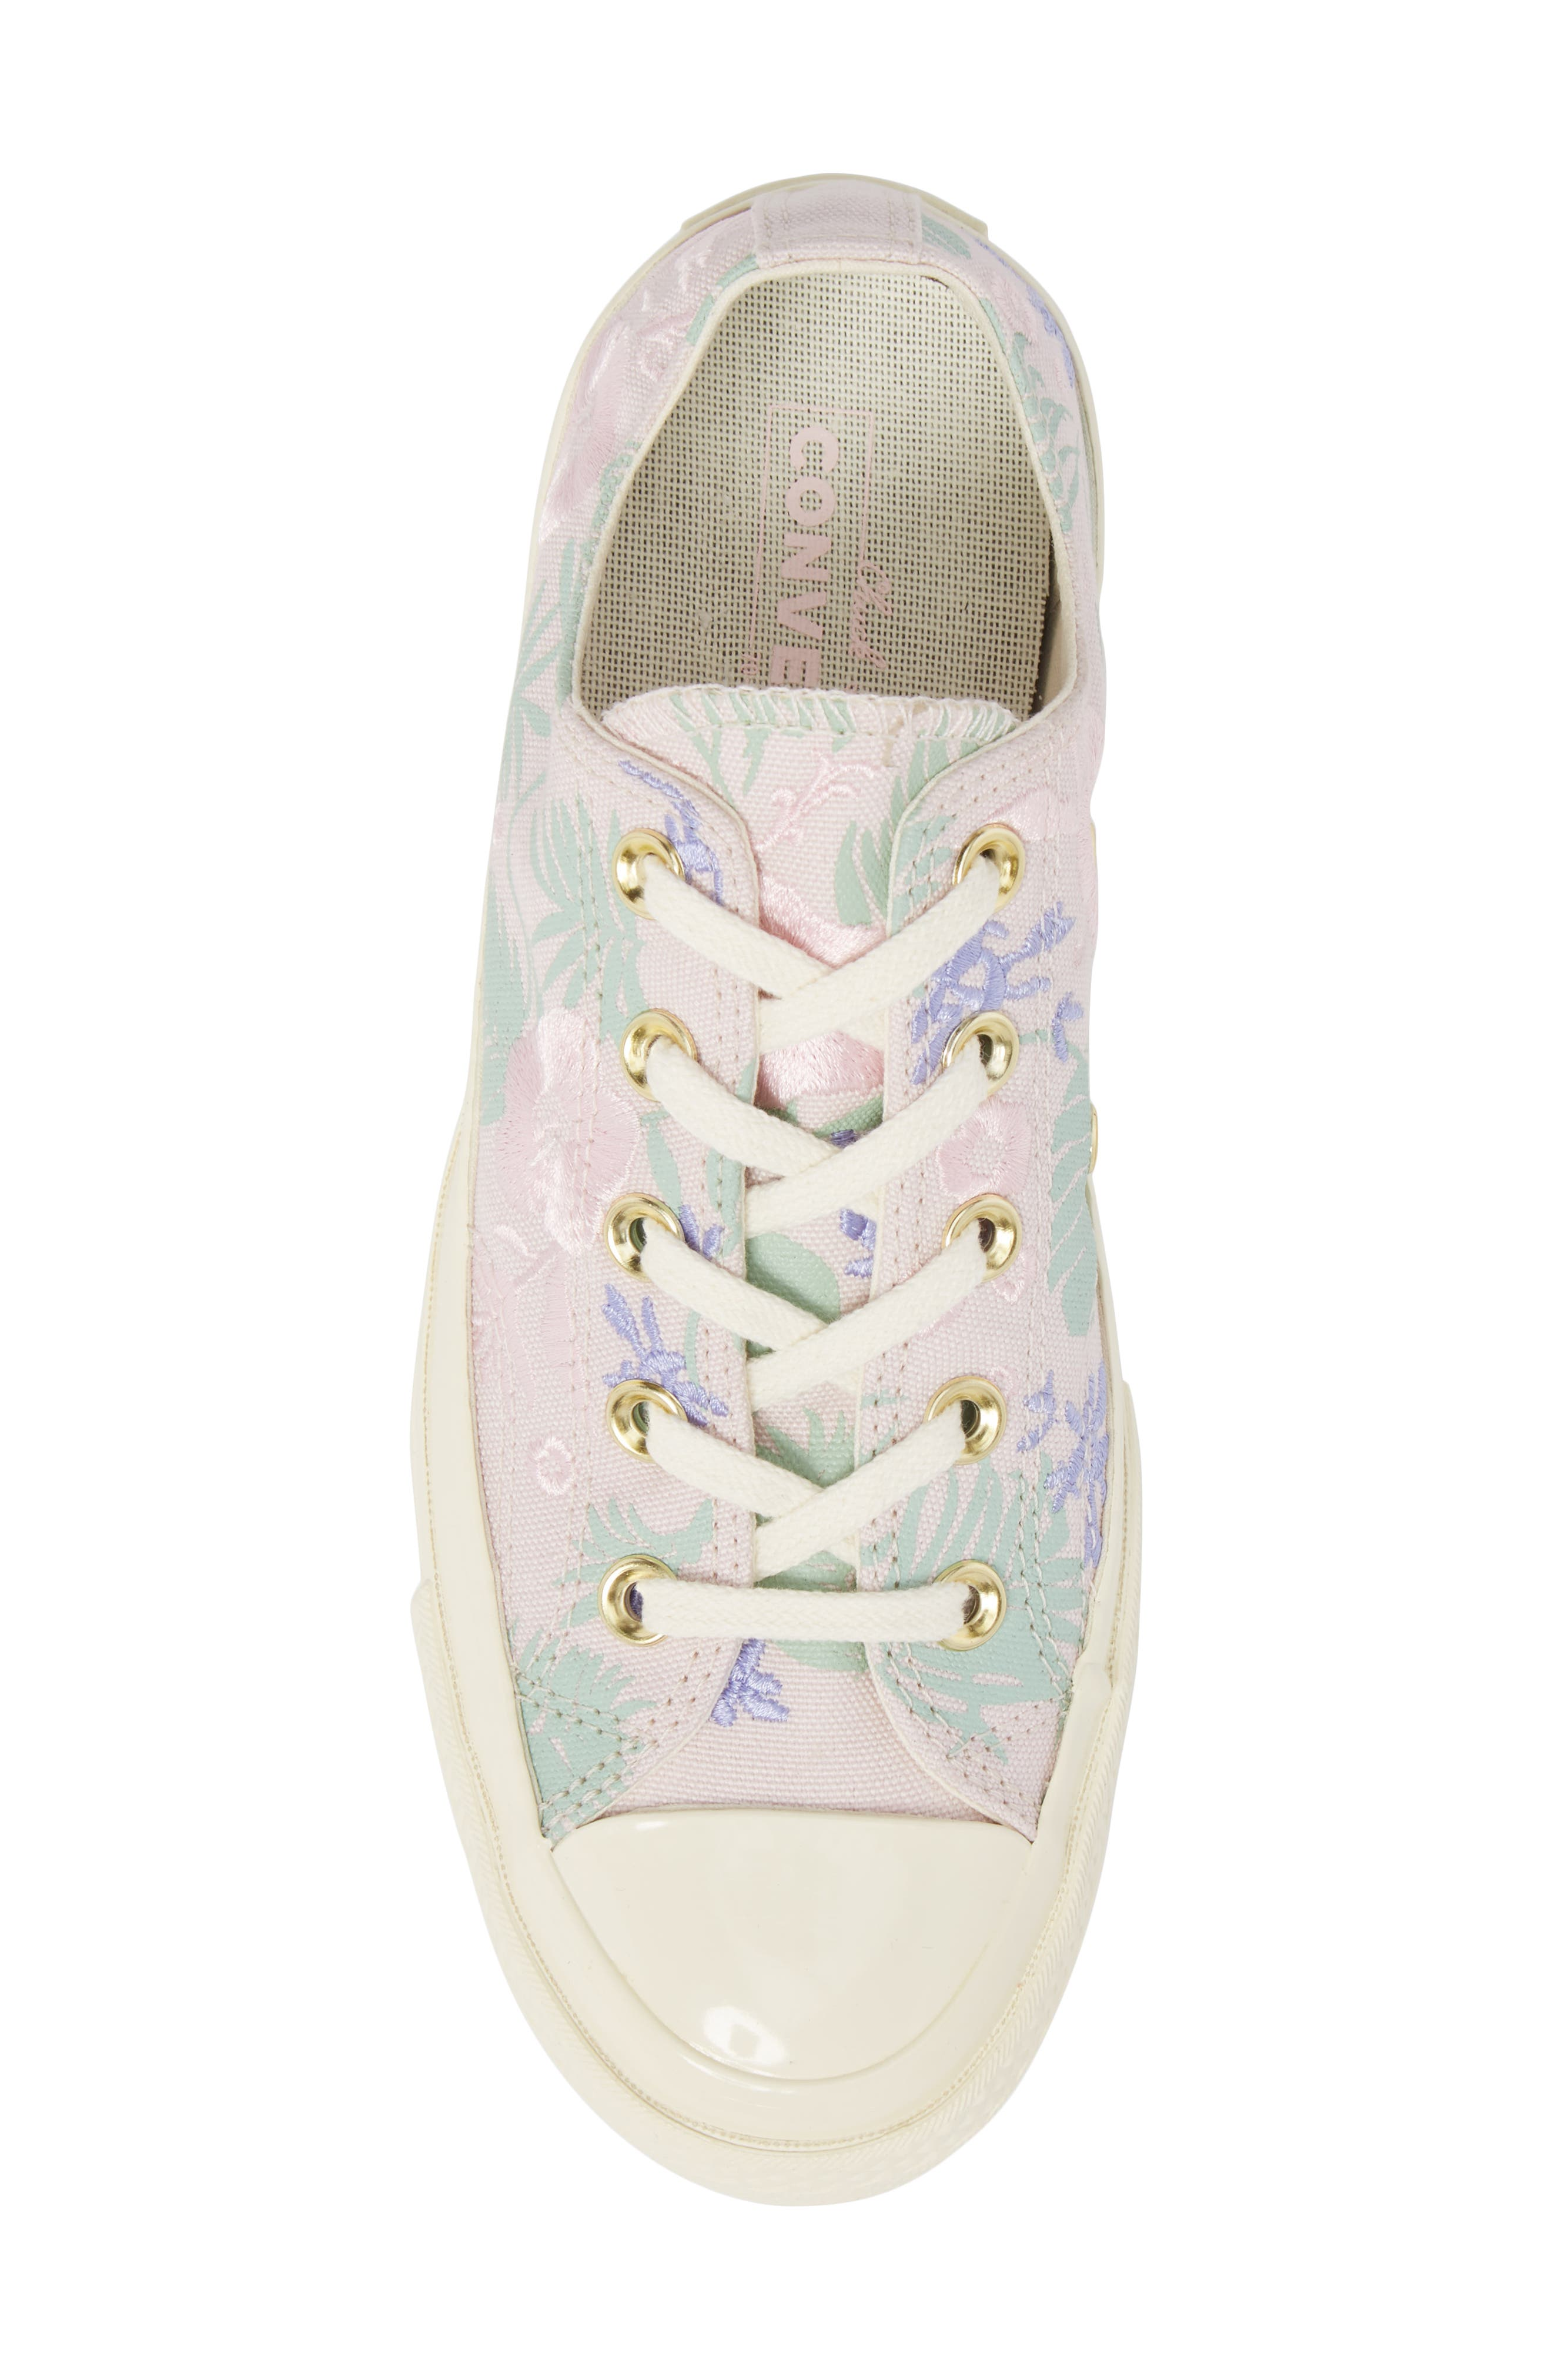 Chuck Taylor<sup>®</sup> All Star<sup>®</sup> 70 Palm Print Low Top Sneaker,                             Alternate thumbnail 5, color,                             658